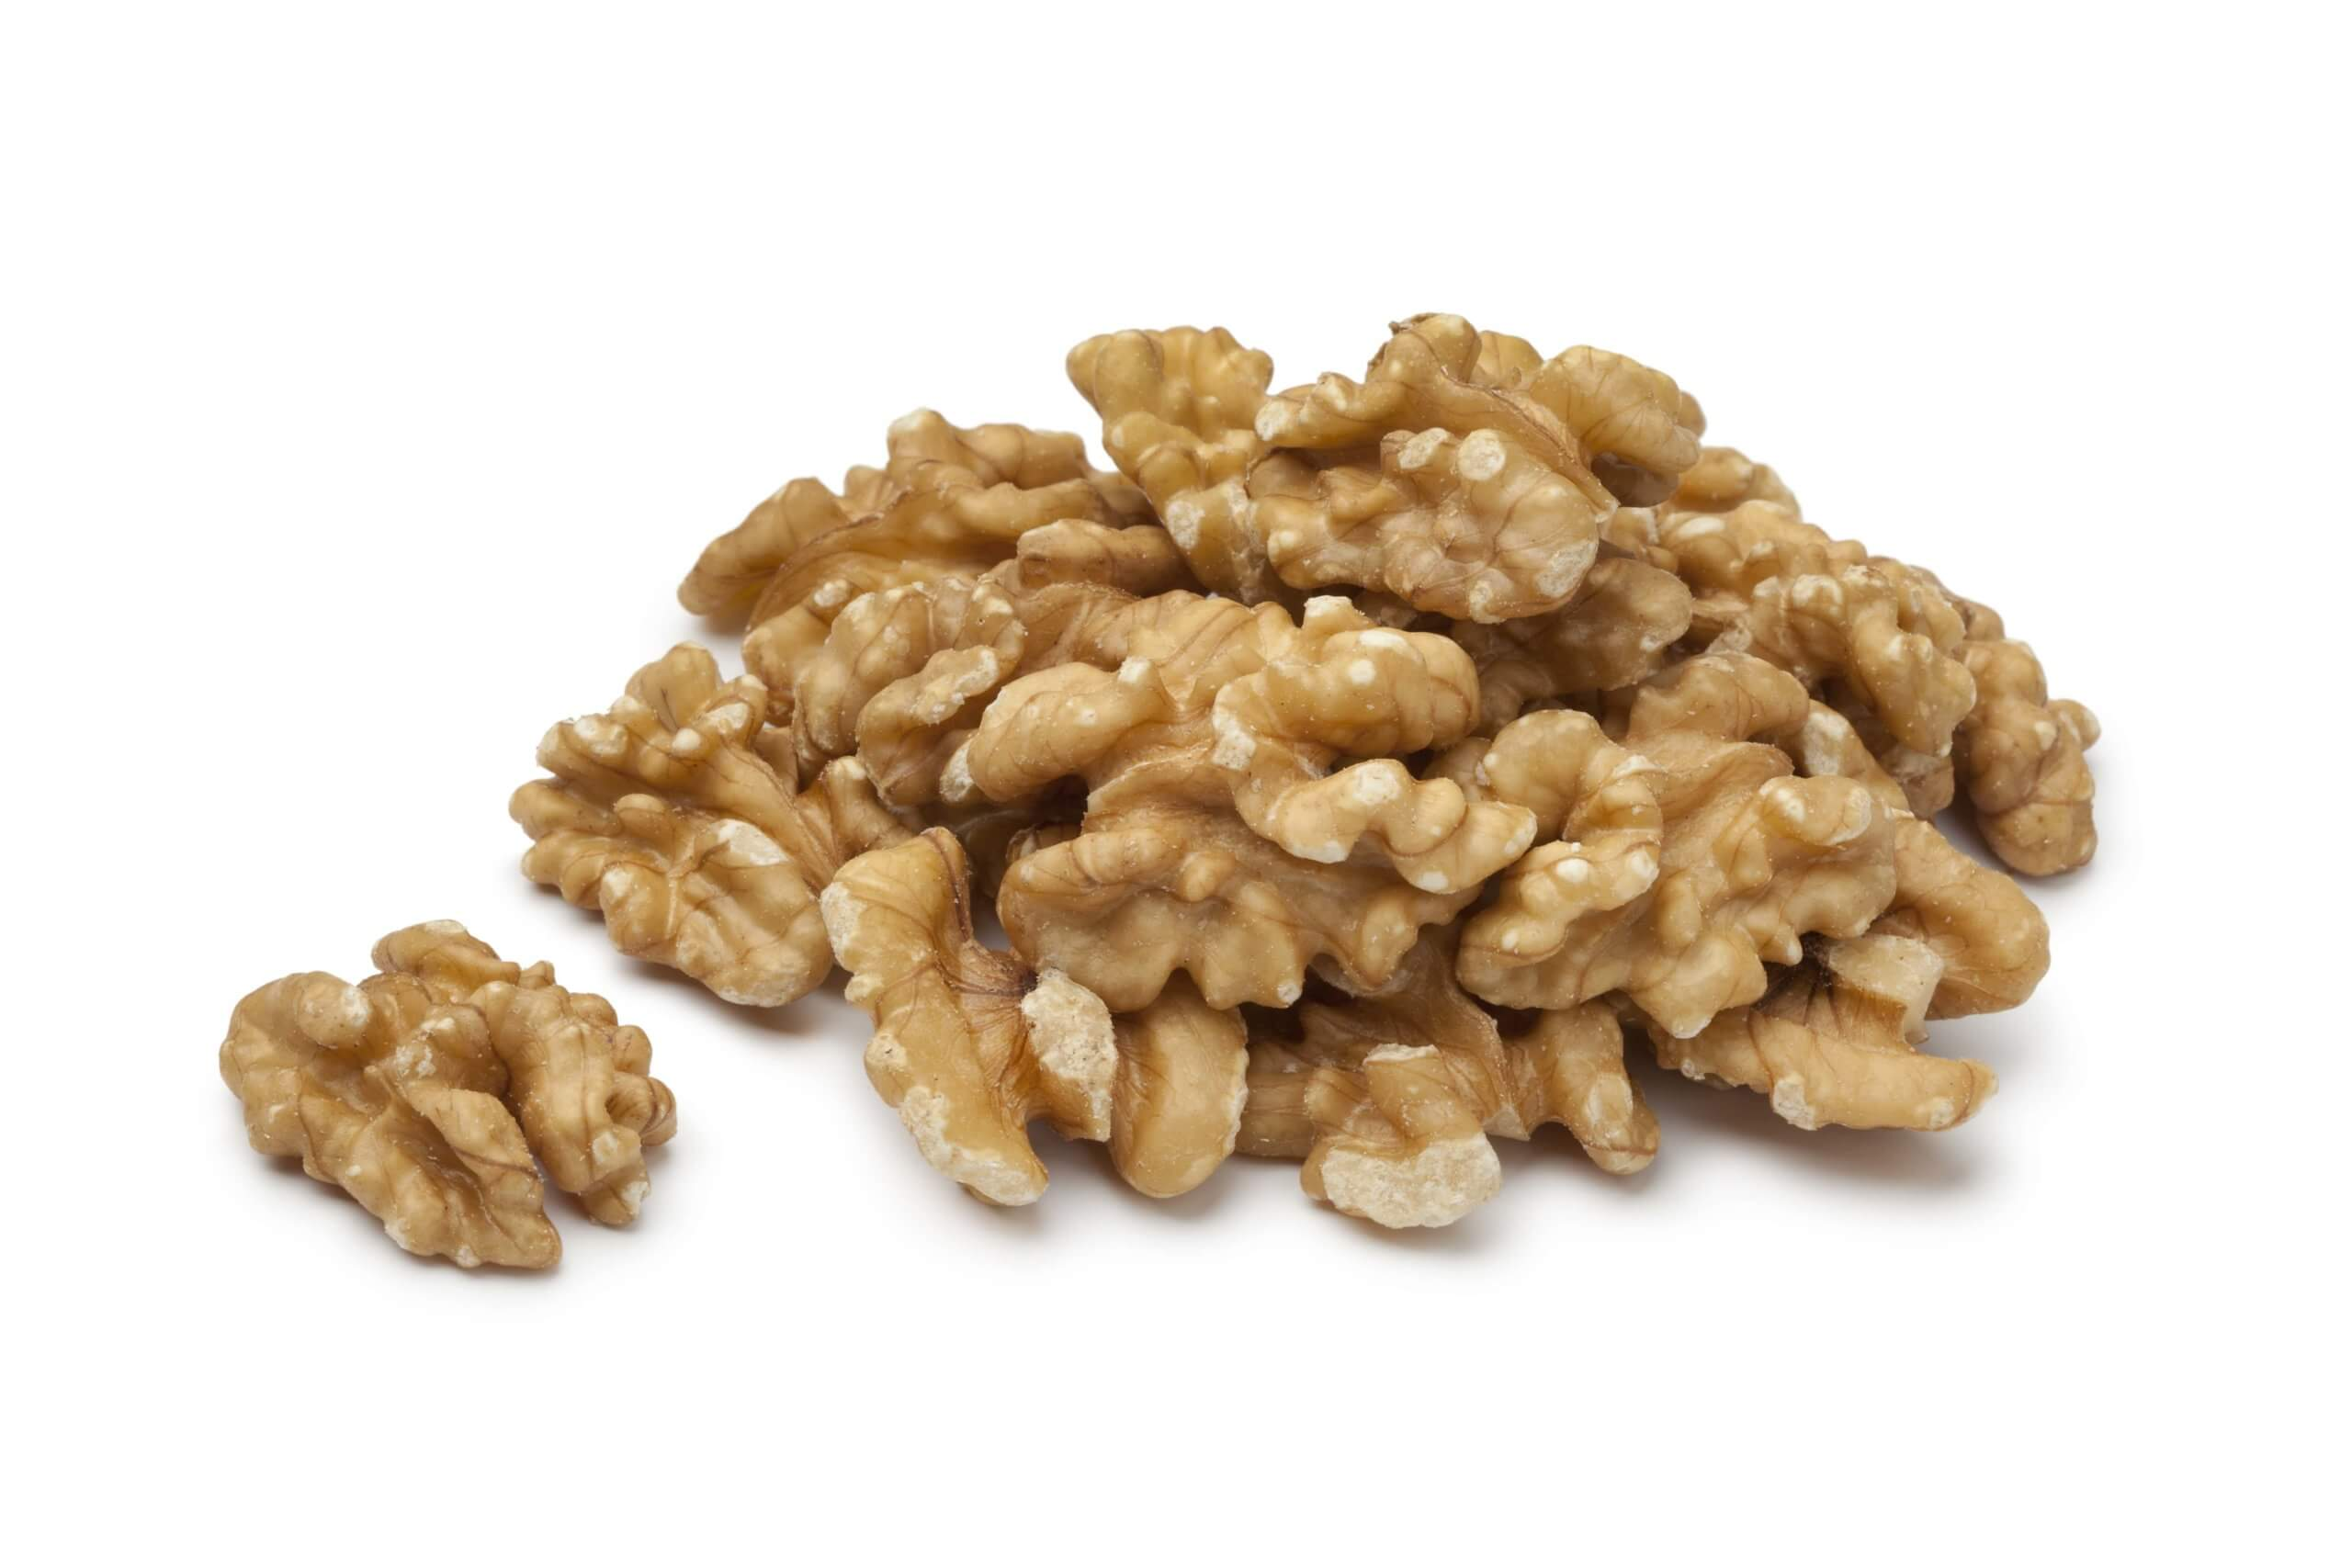 heap-of-peeled-walnuts-P9VFN4G-min-scaled.jpg